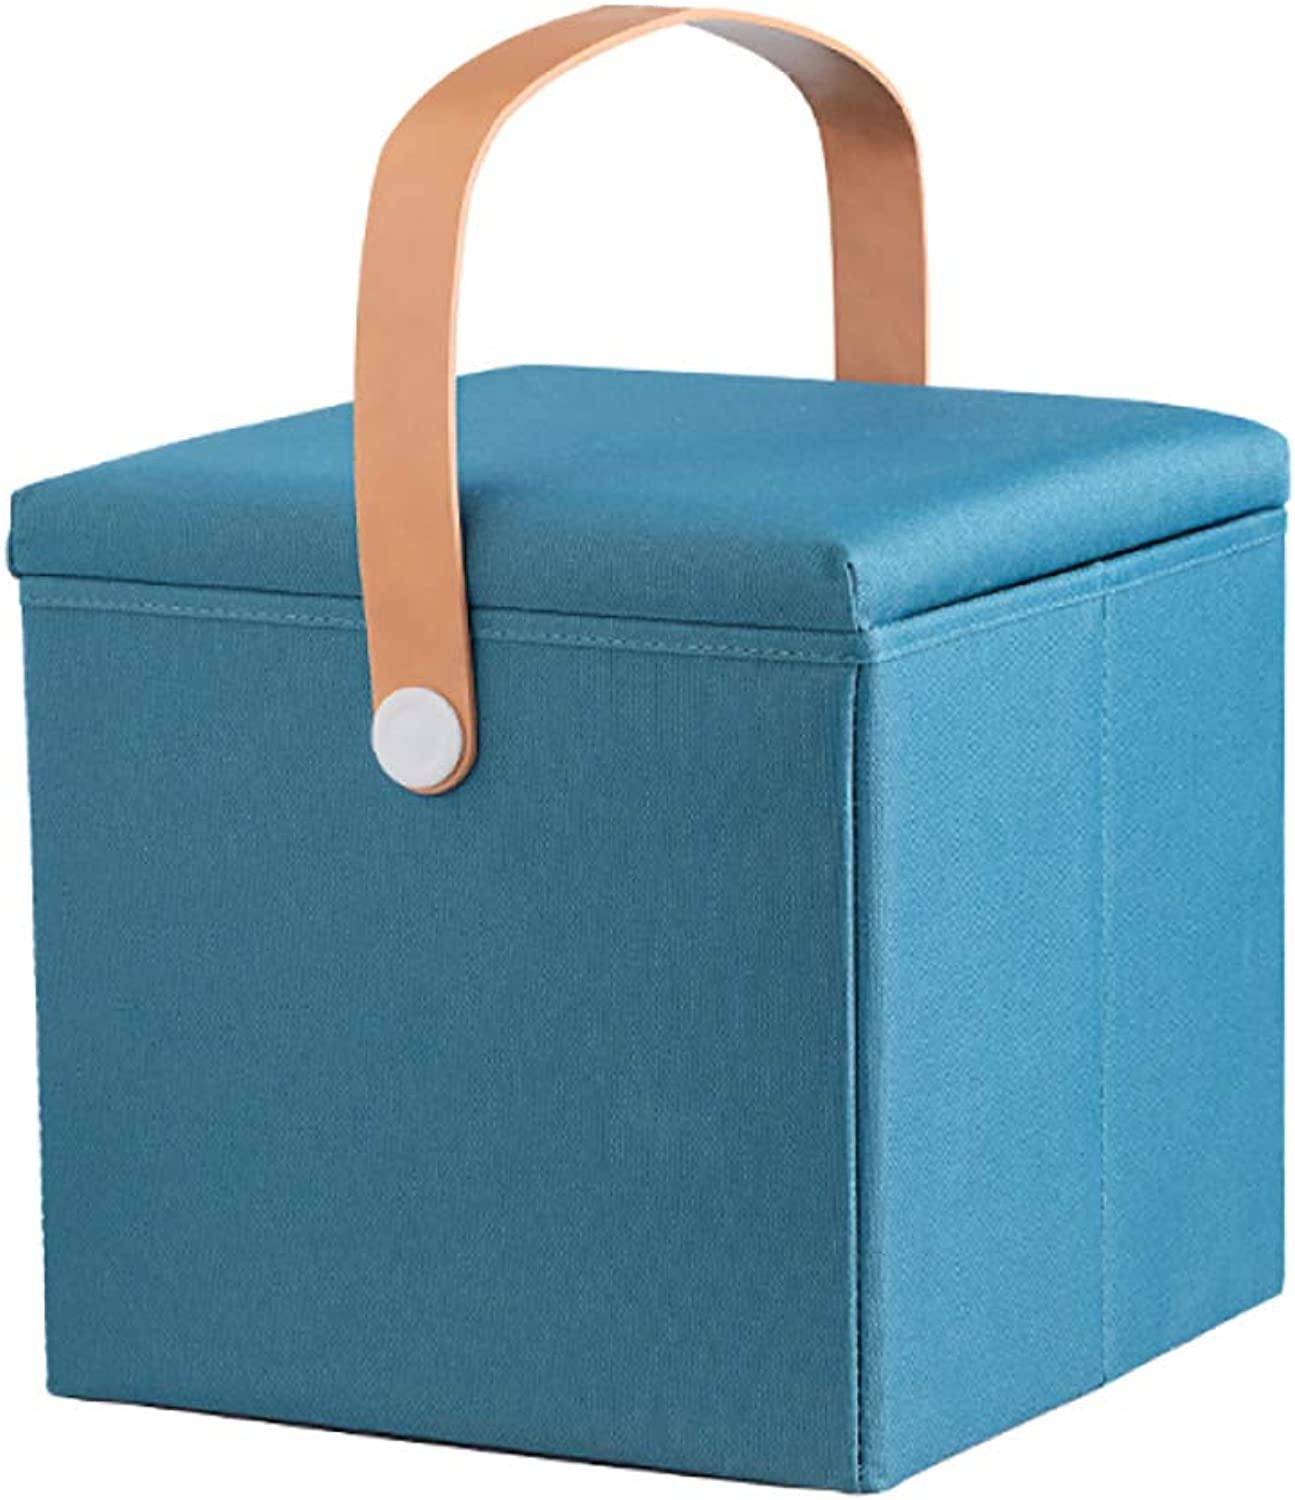 Storage Stool Thickening Folding Storage Fabric Footrest Chair Door Change shoes Upholstered with Cover Highly Elastic Sponge Filling (27L),bluee+30  30  30cm